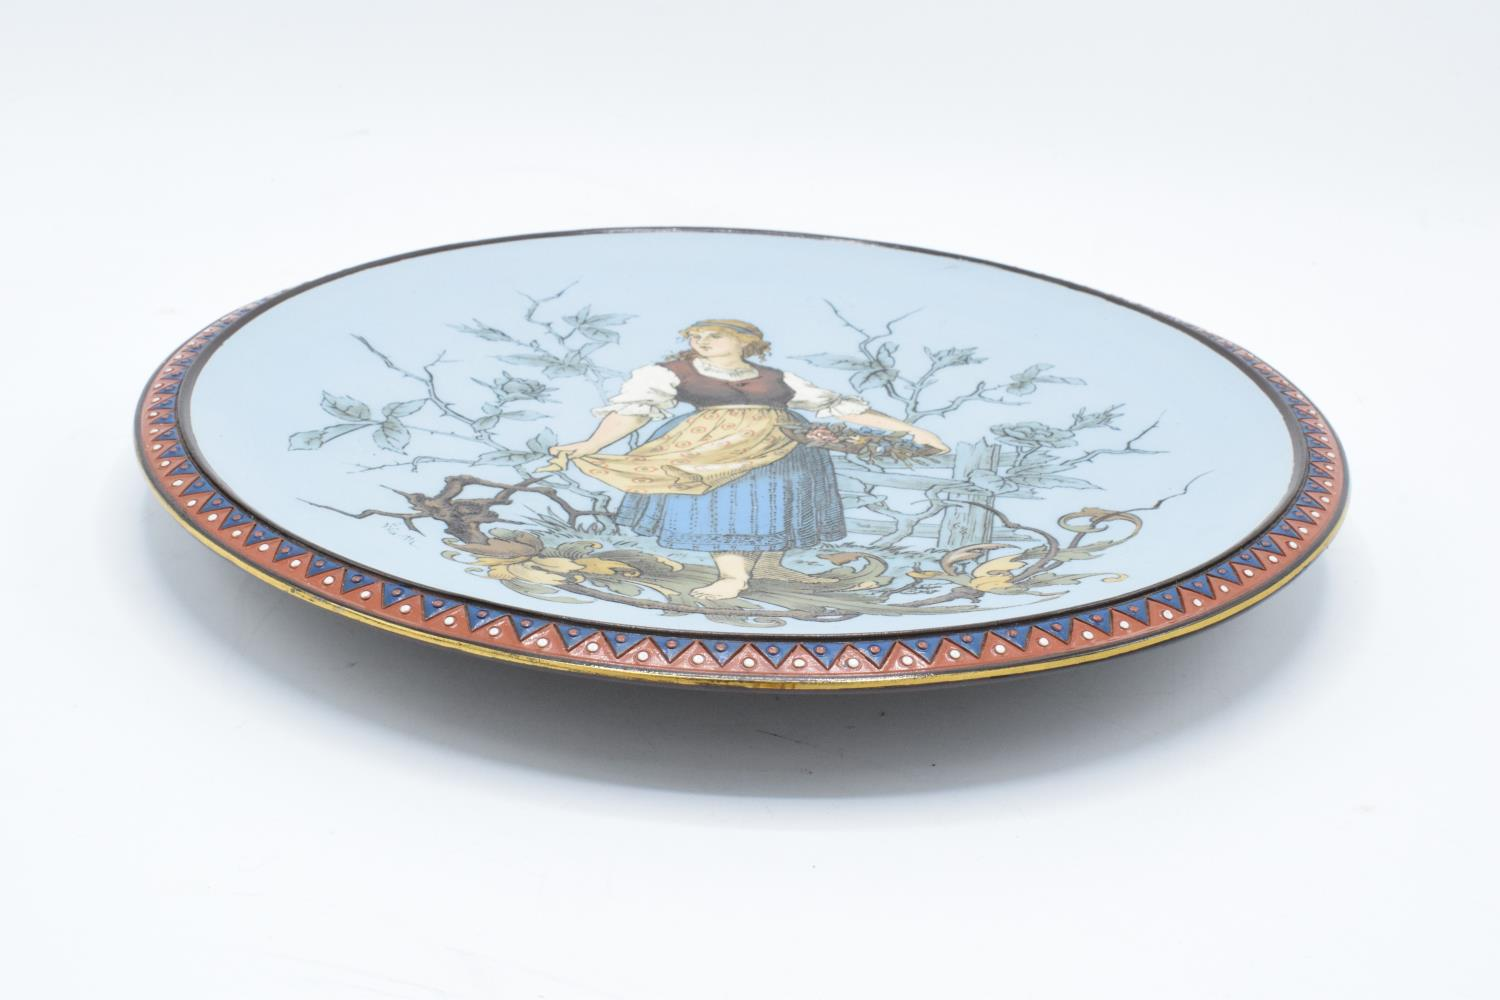 Late 19th century Mettlach (Villeroy and Boch) wall charger after C. Warth decorated with a lady - Image 2 of 5